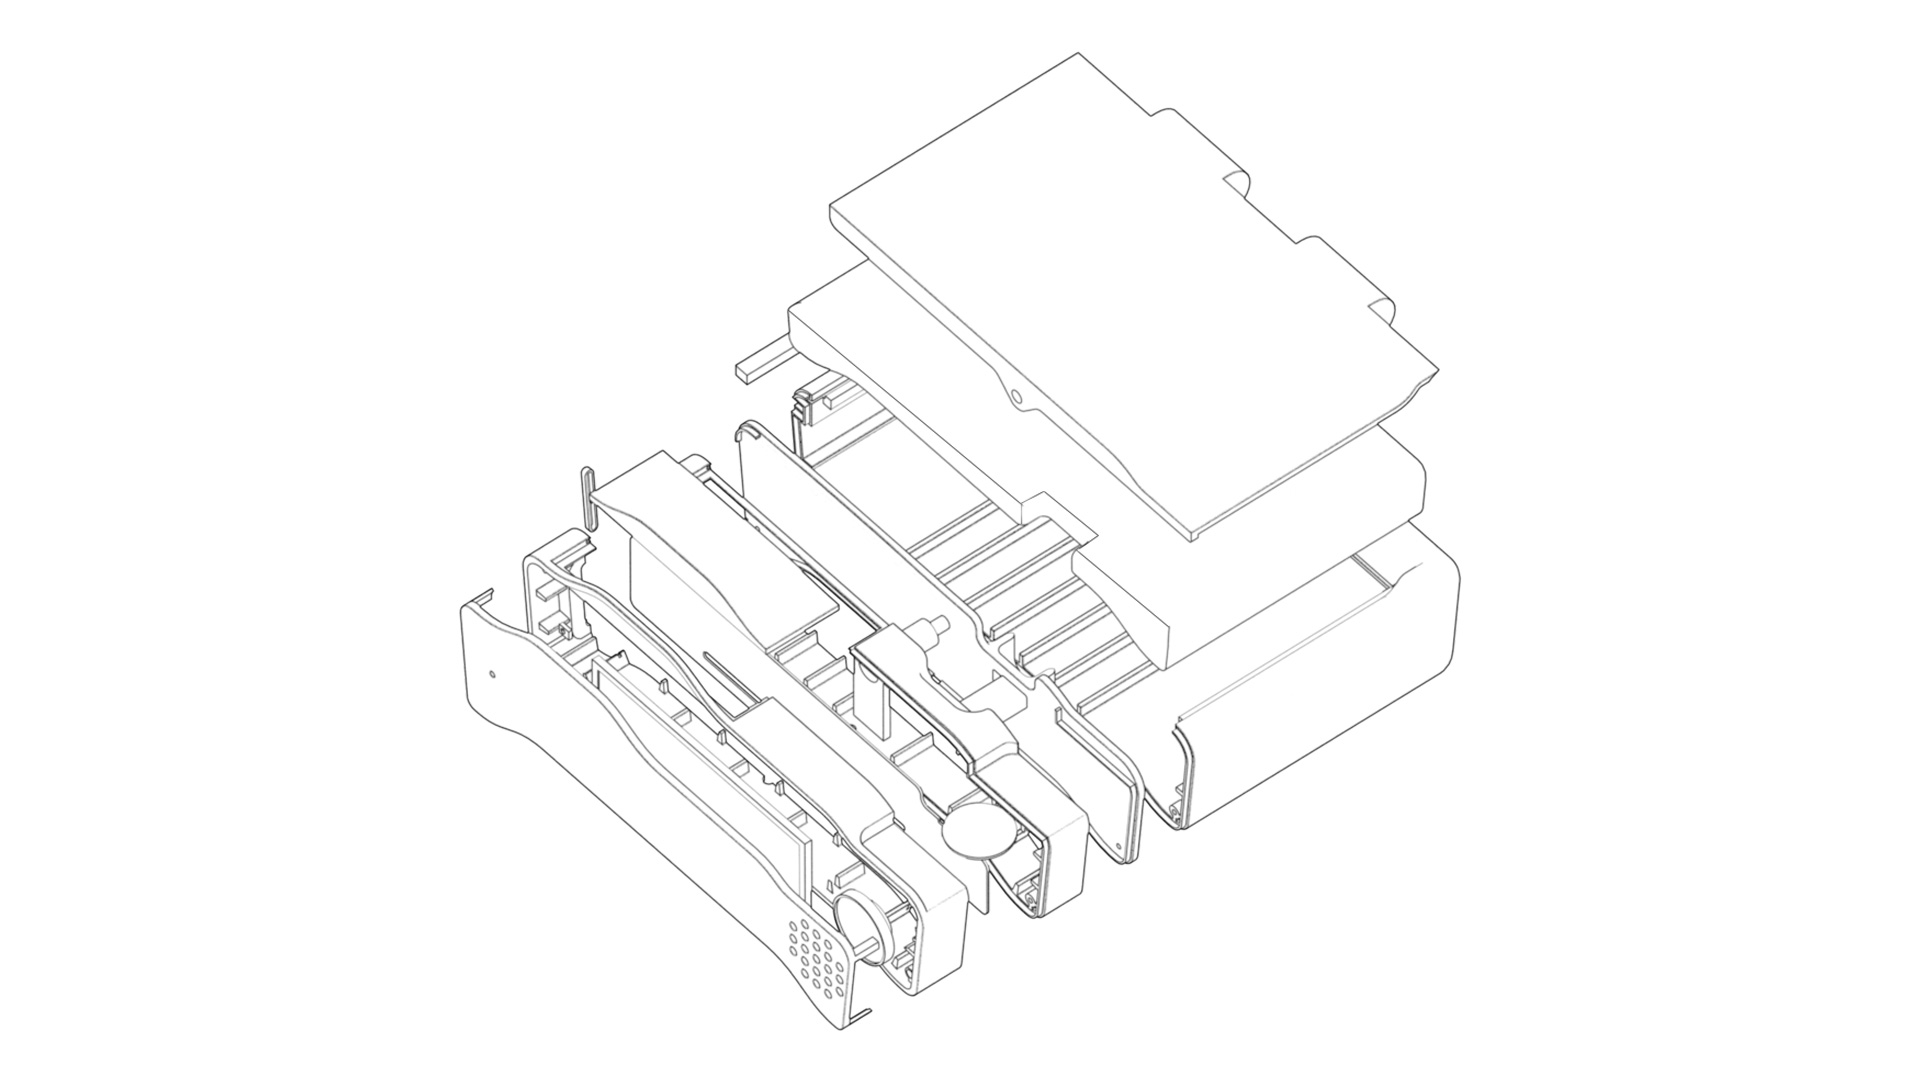 Phone Cell base CAD exploded view